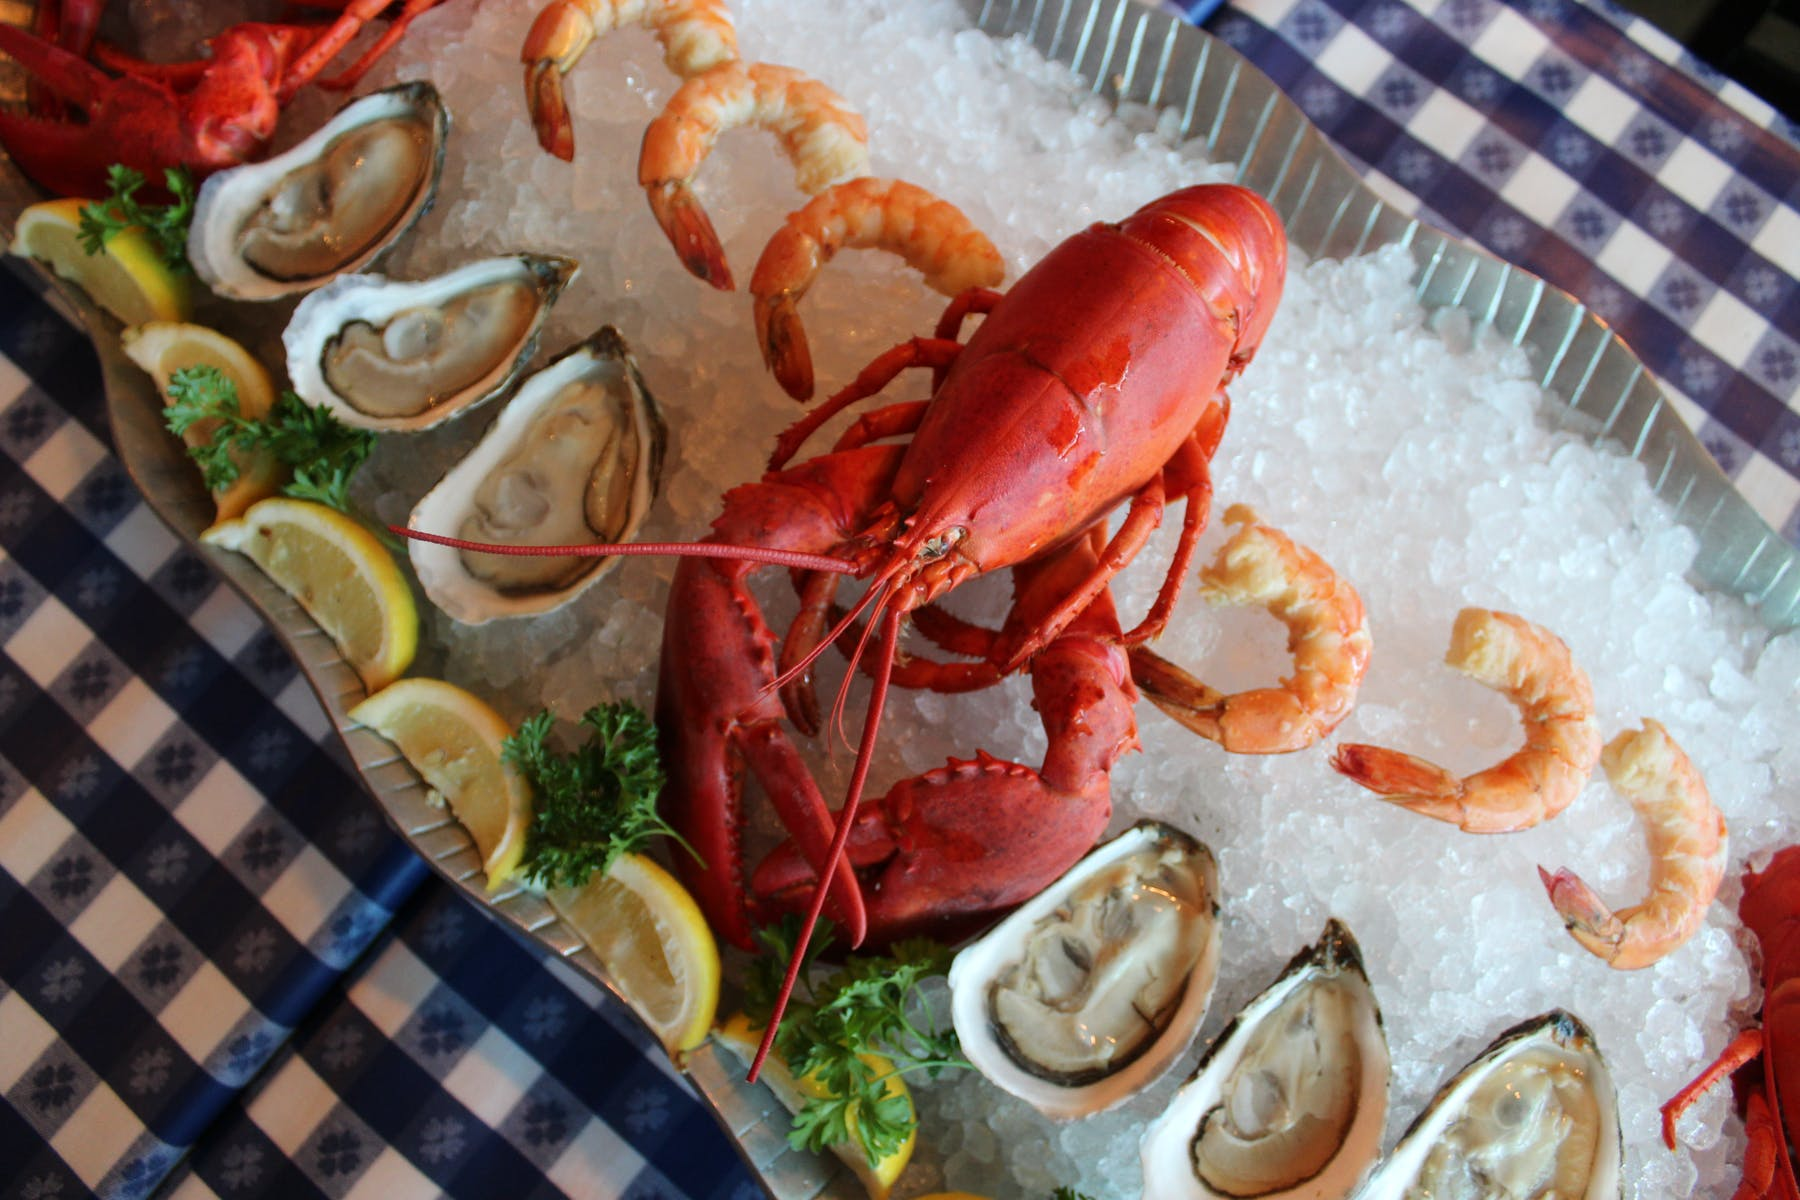 a lobster and oysters